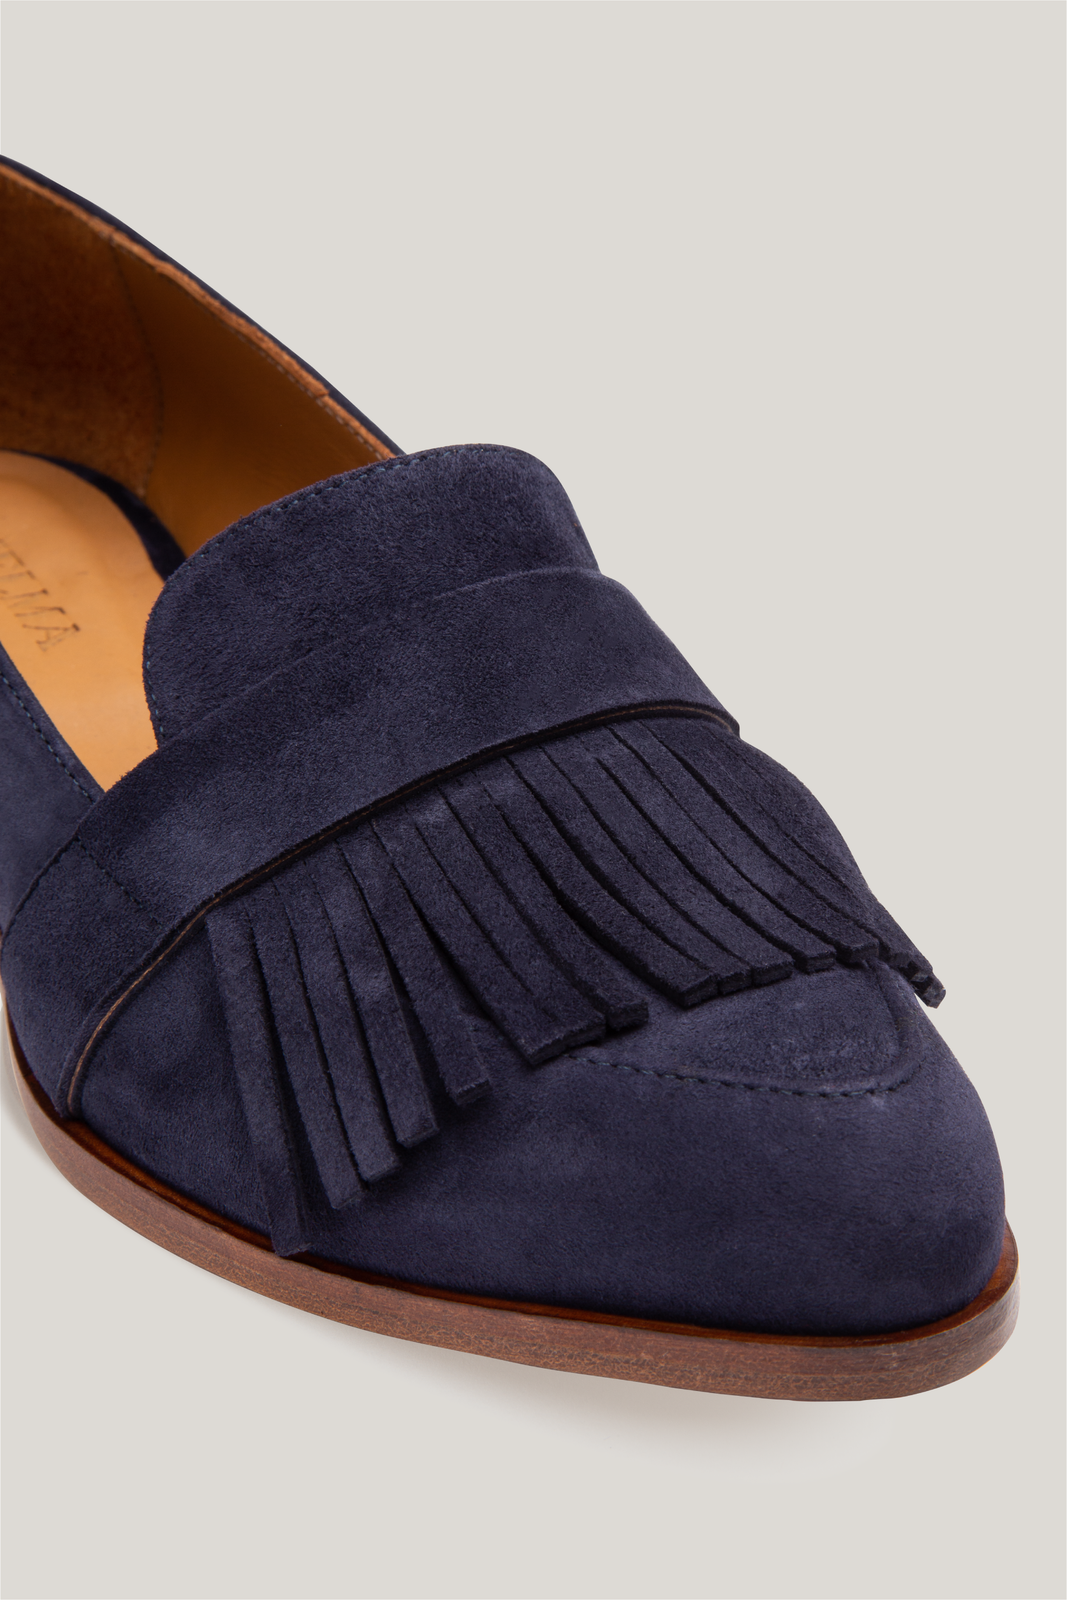 The Fringe in Midnight